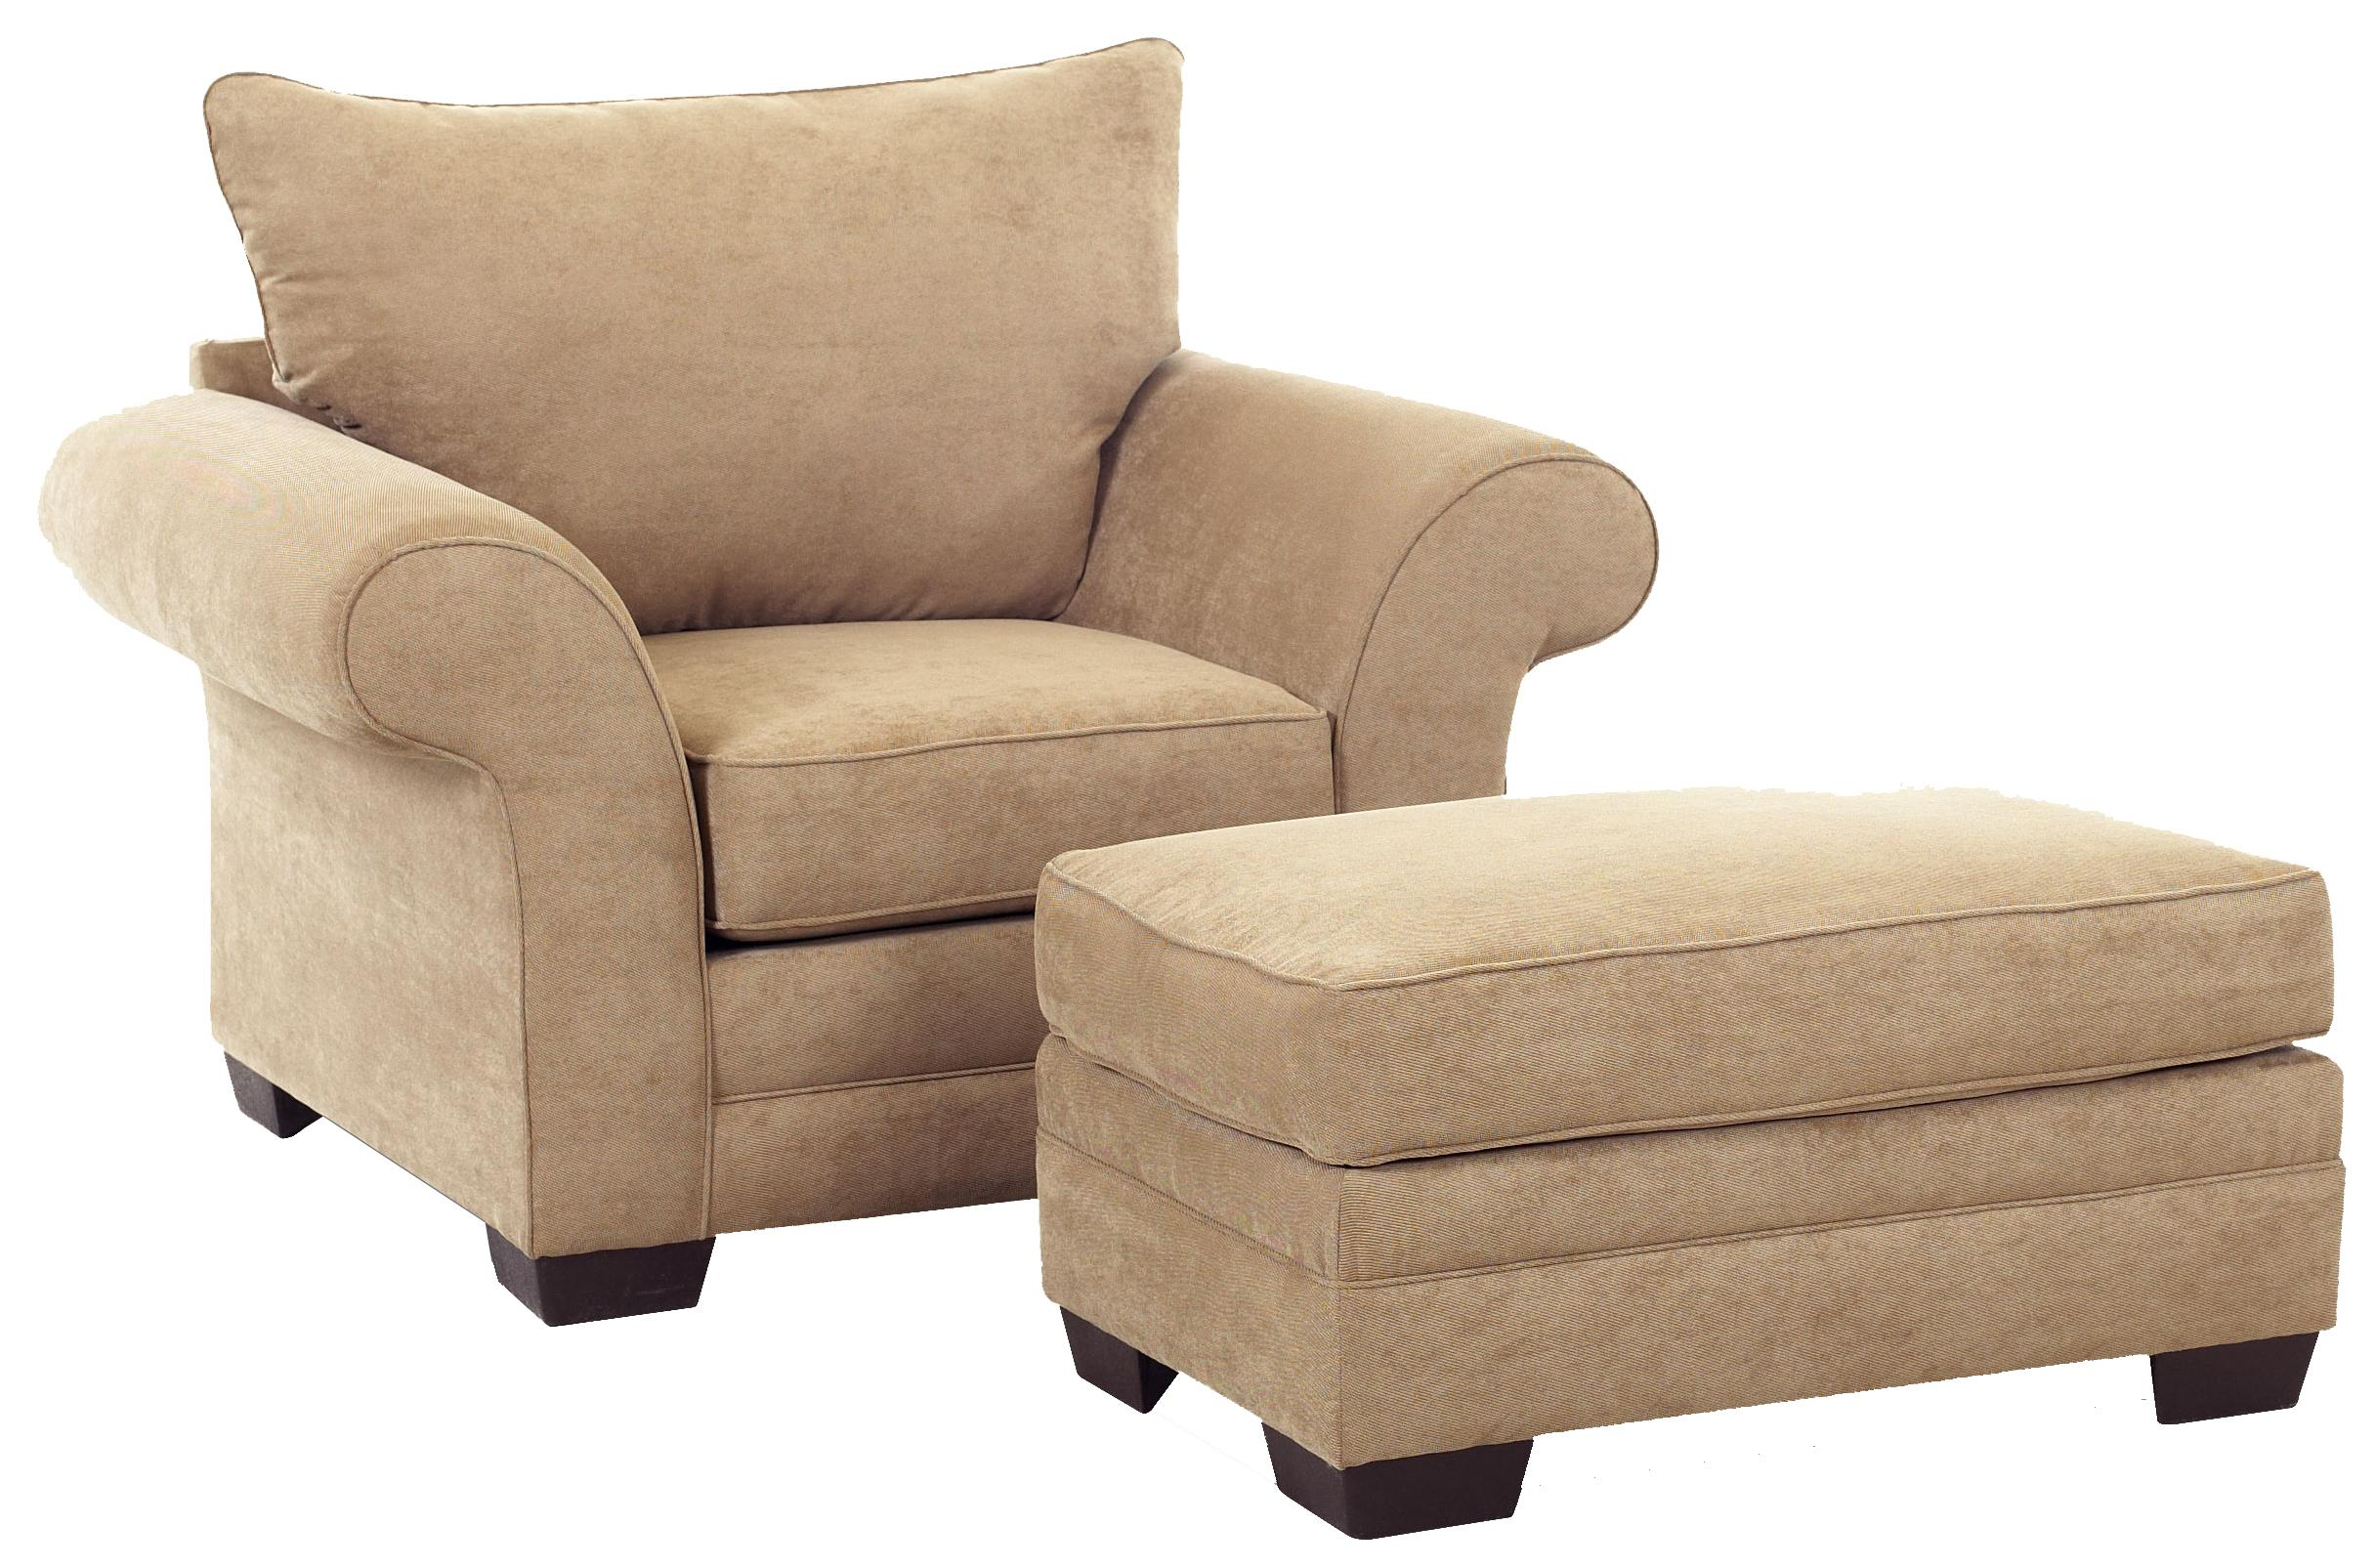 Klaussner Holly Chair and Ottoman - Item Number: E76900C+OTTO